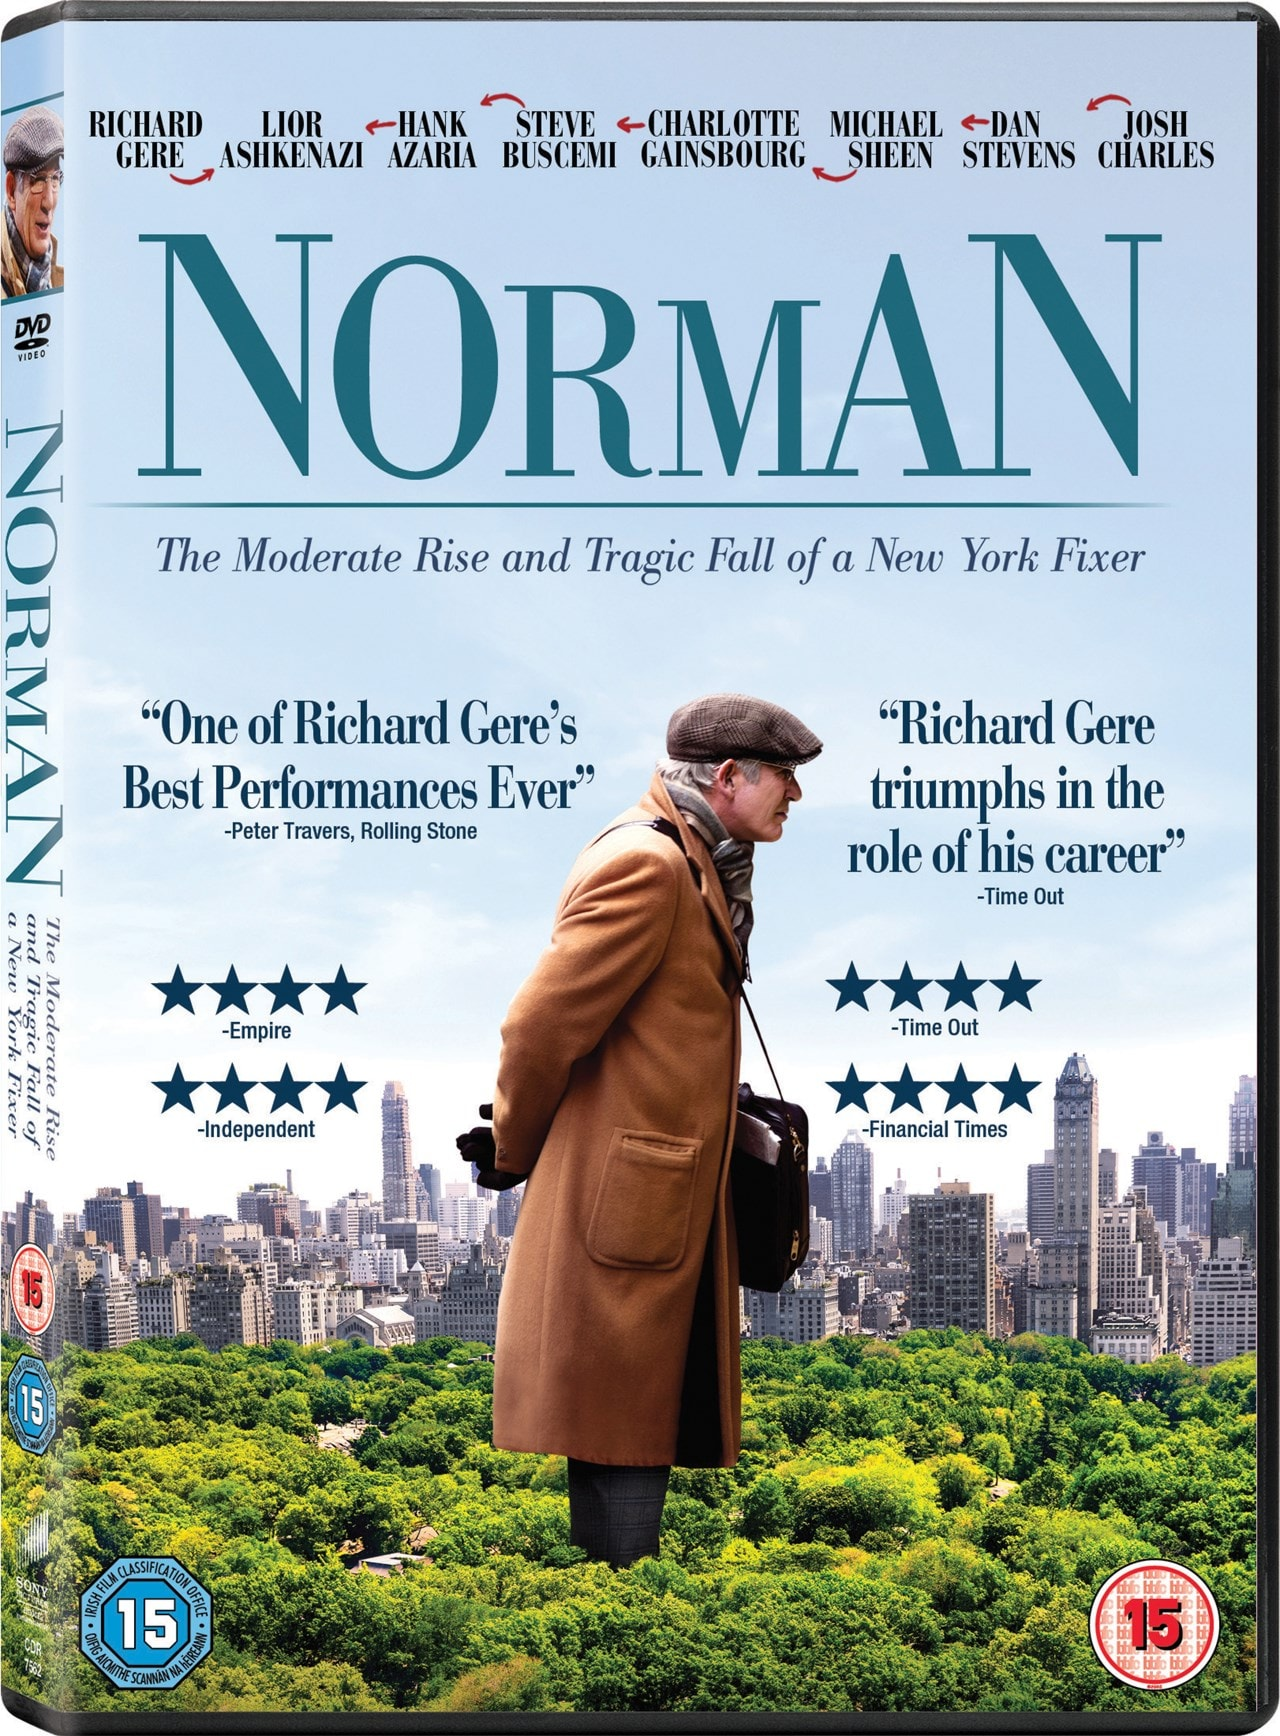 Norman: The Moderate Rise and Tragic Fall of a New York Fixer - 2